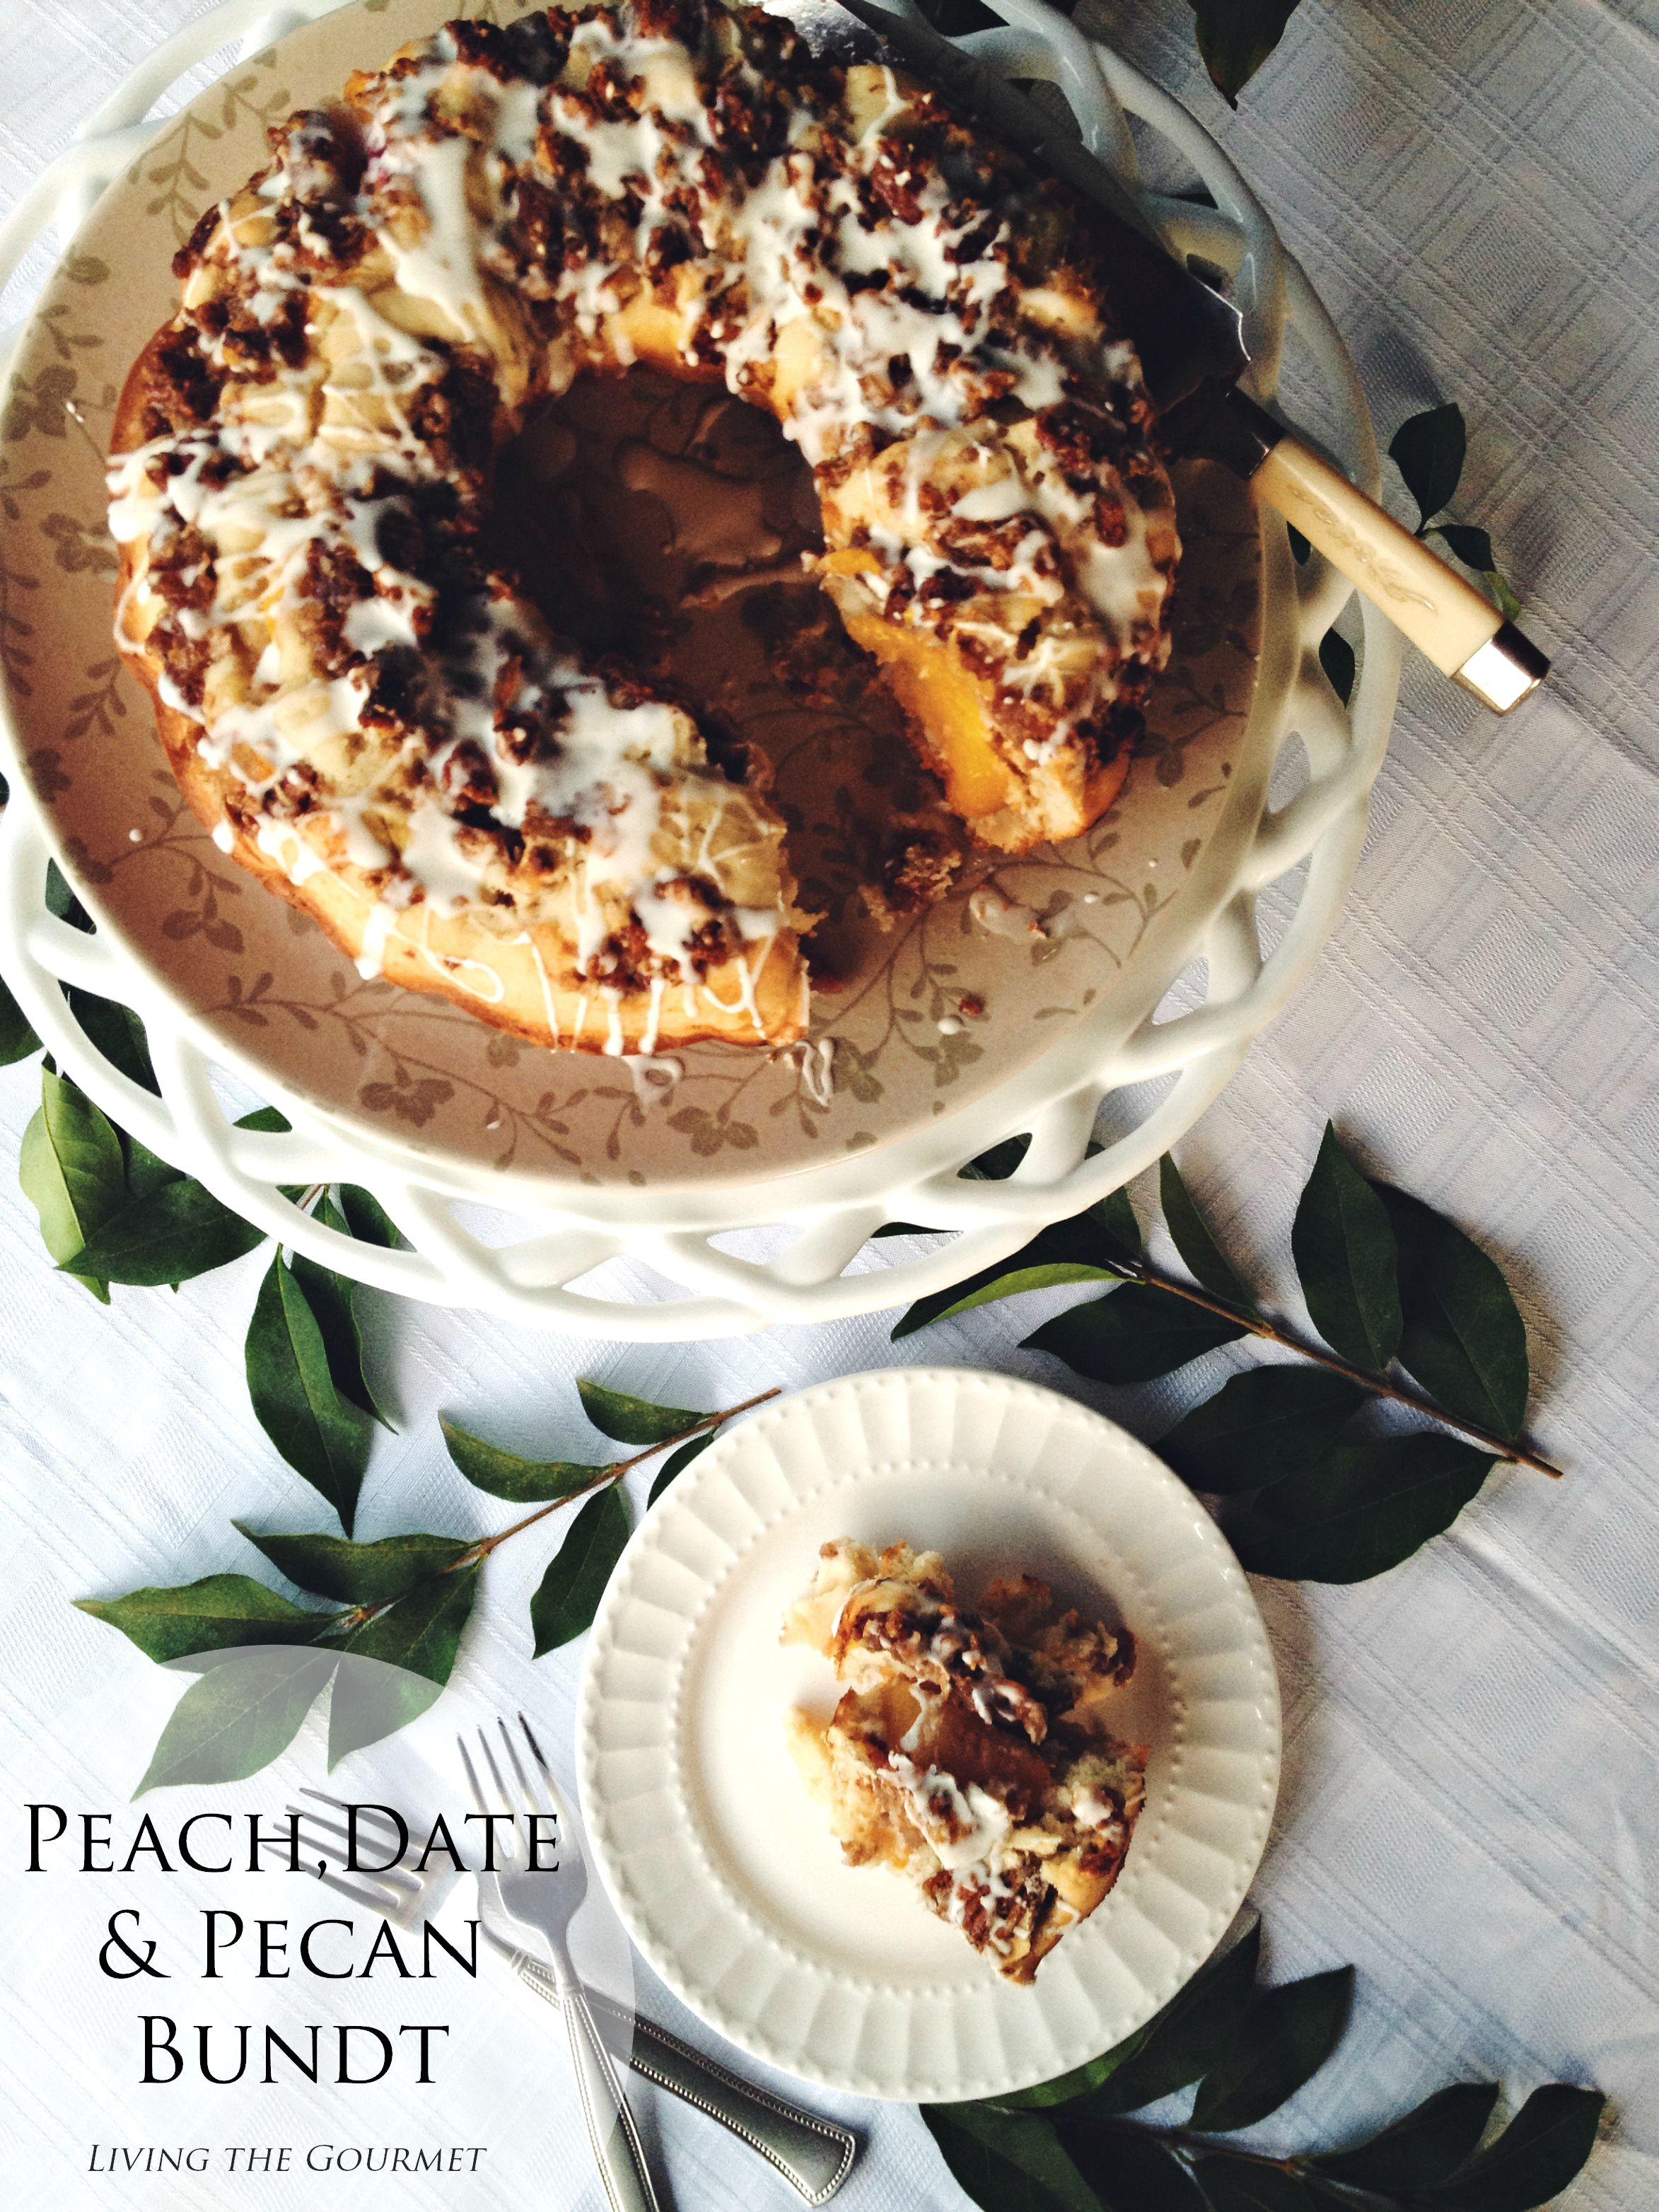 Living the Gourmet: Peach, Date & Pecan Bundt